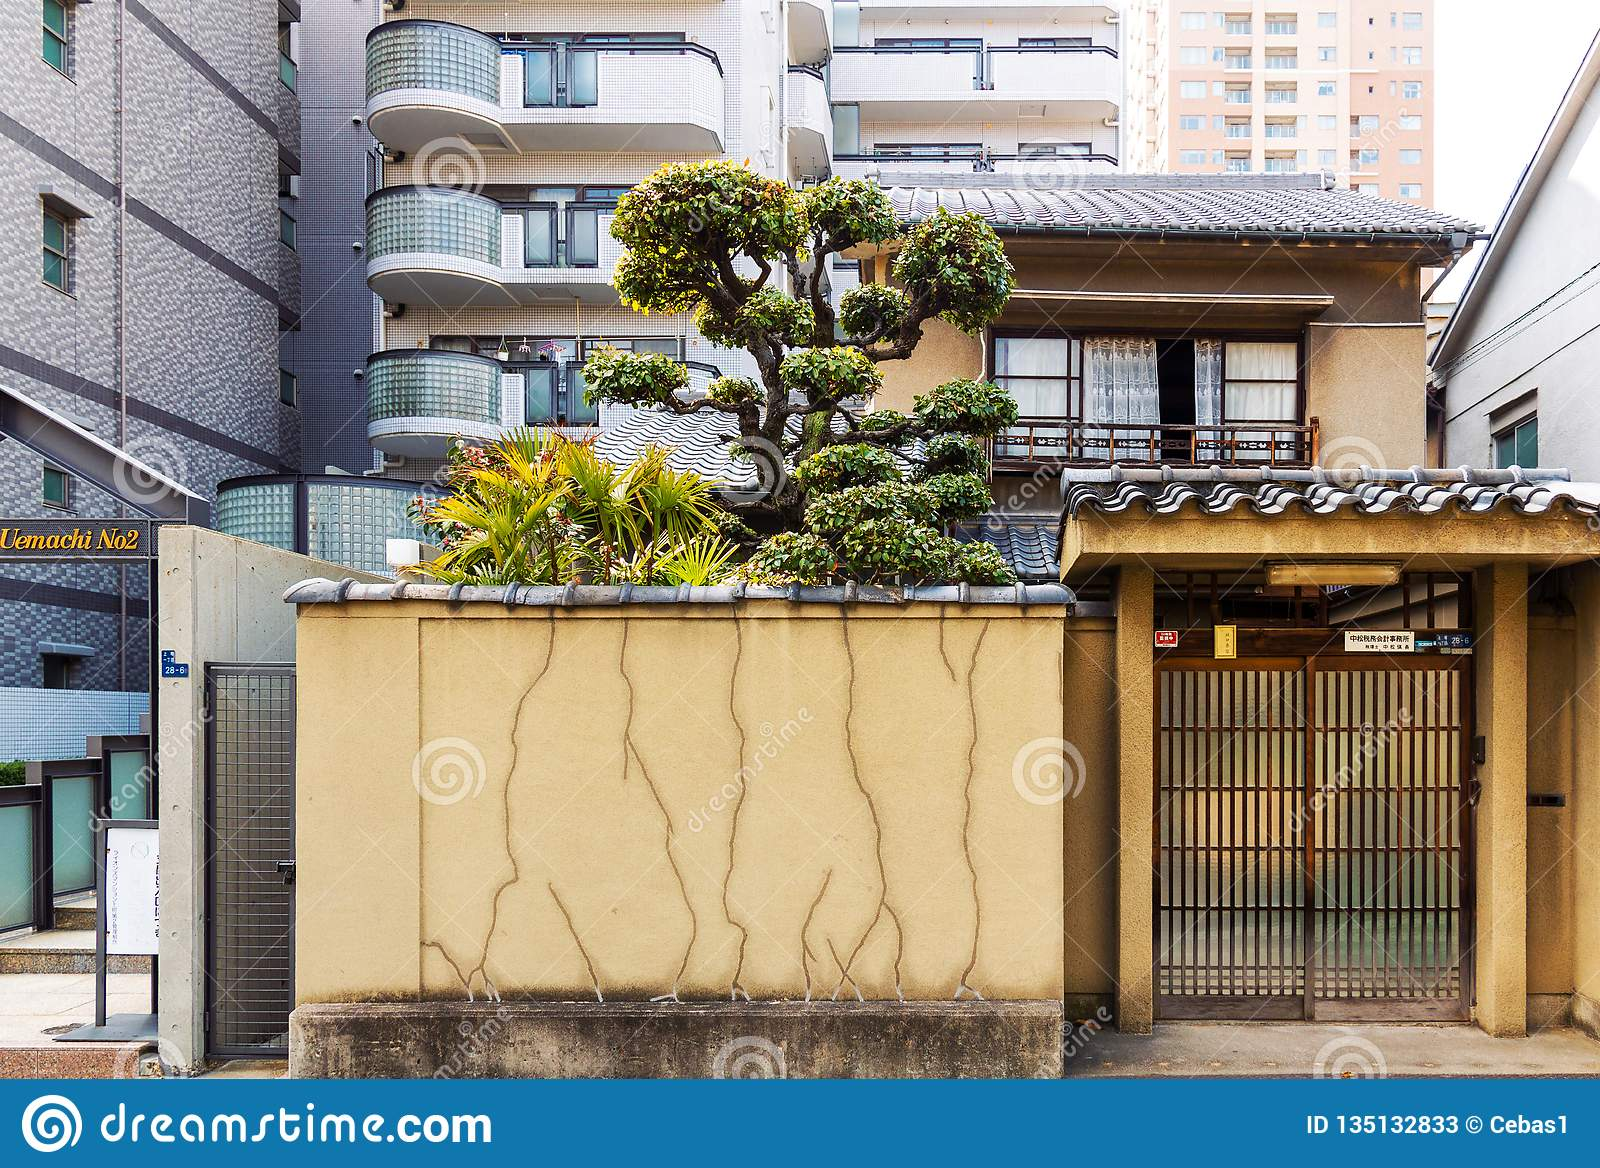 Small old japanese house facade in the background of high residential buildings in Japan